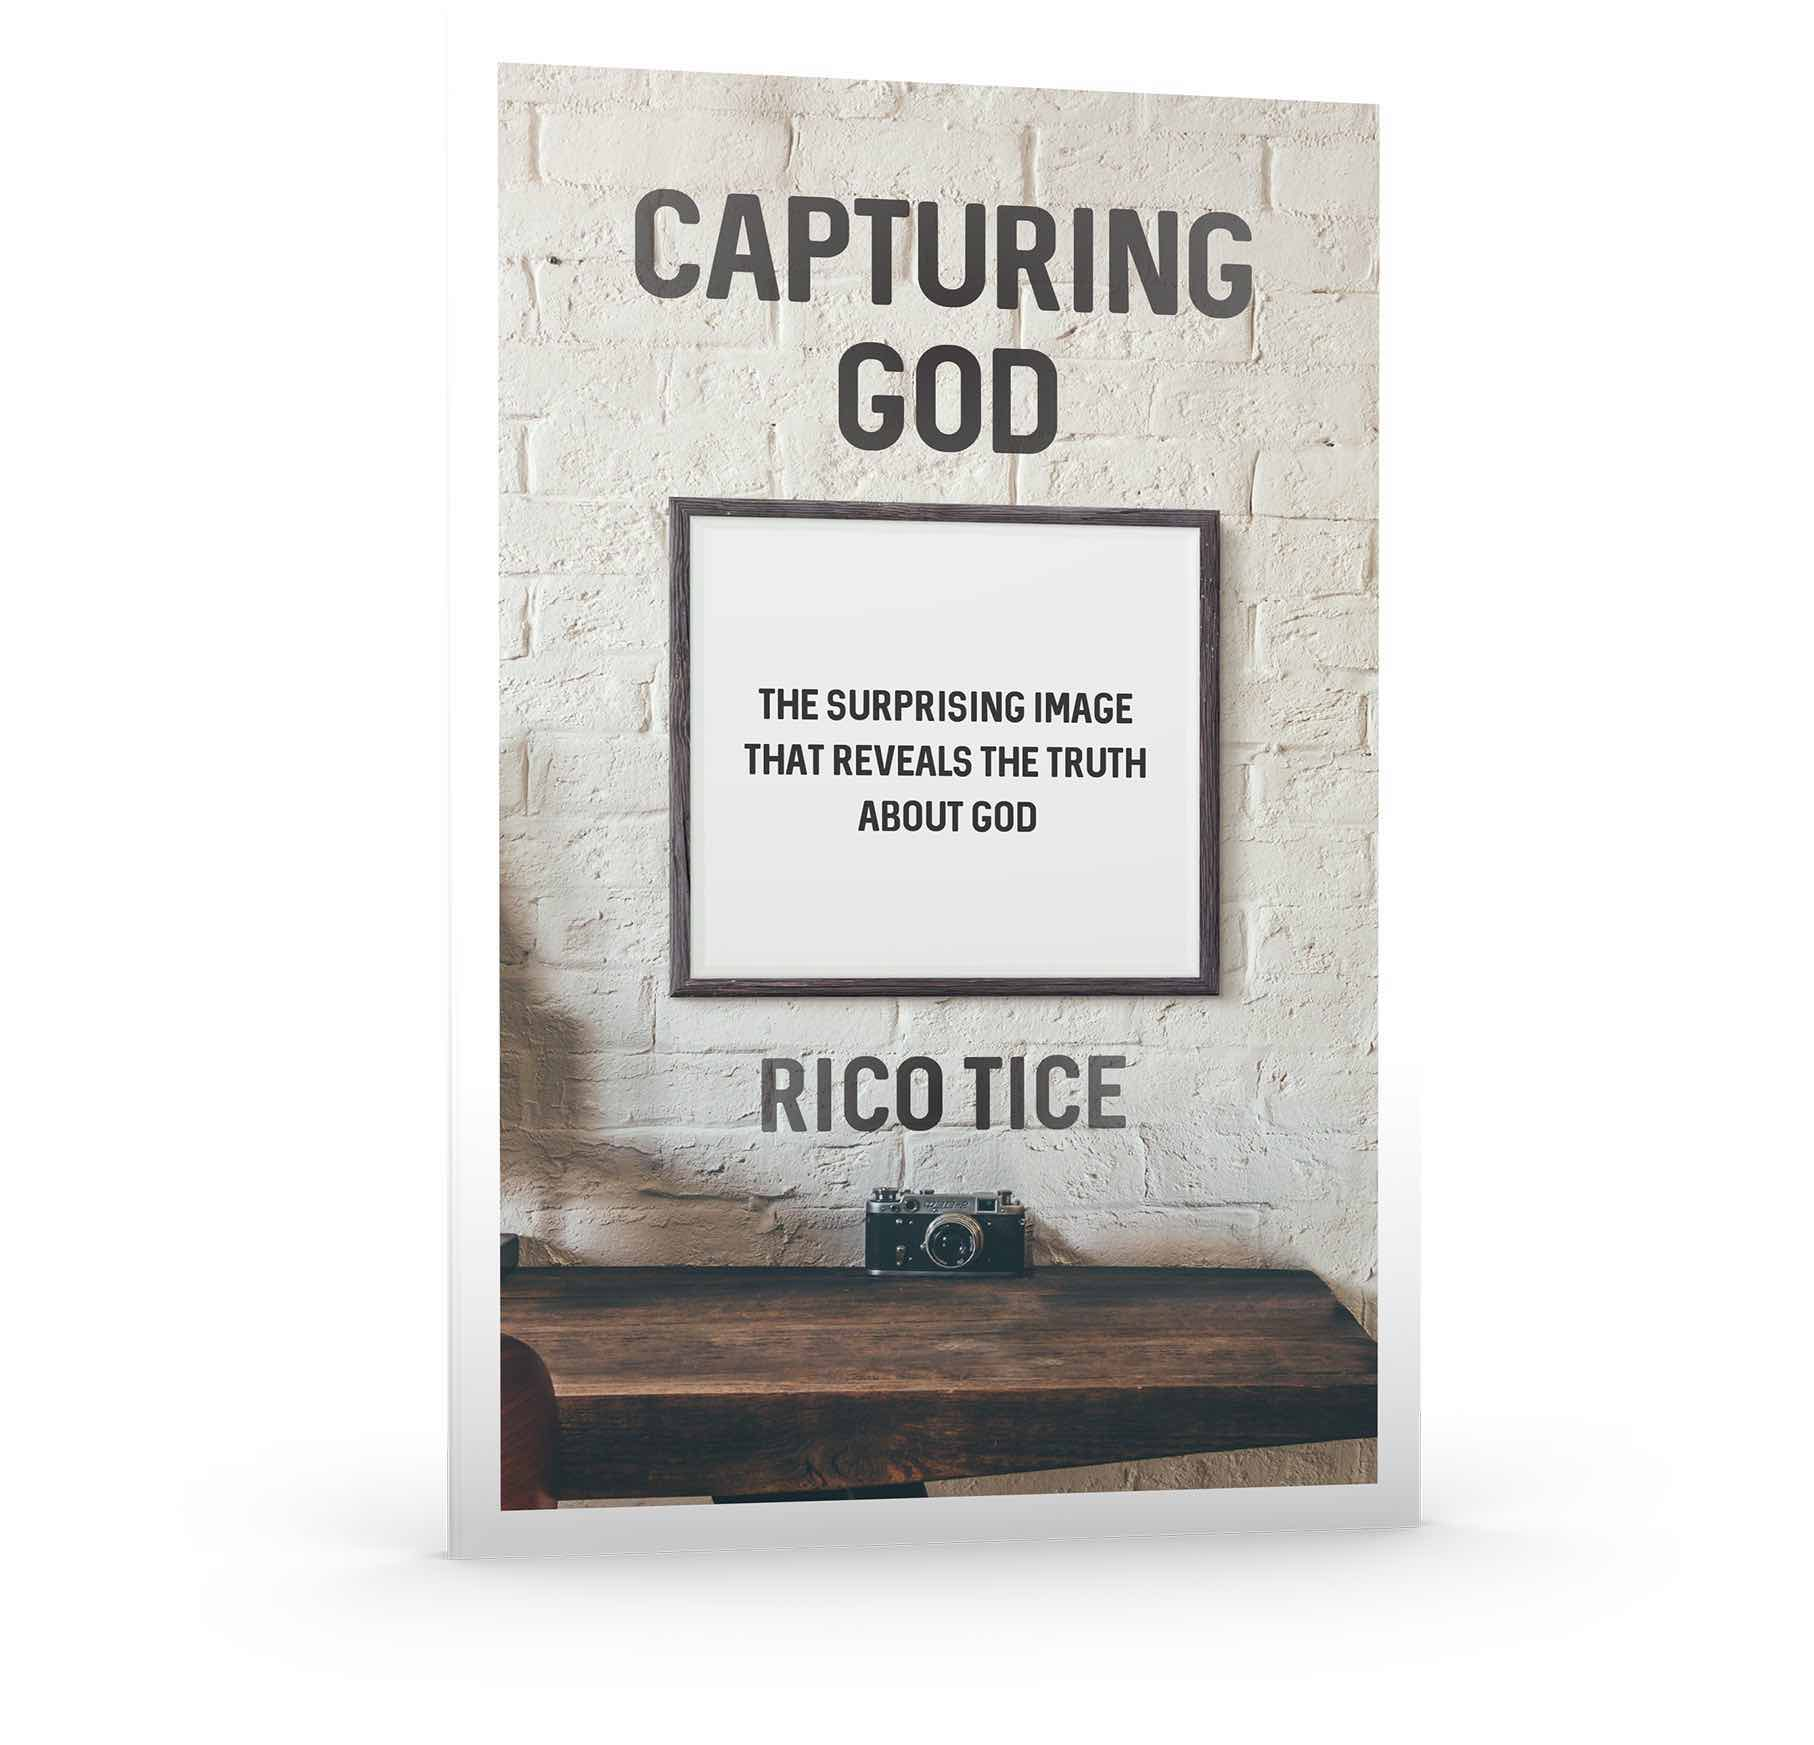 Capturing God